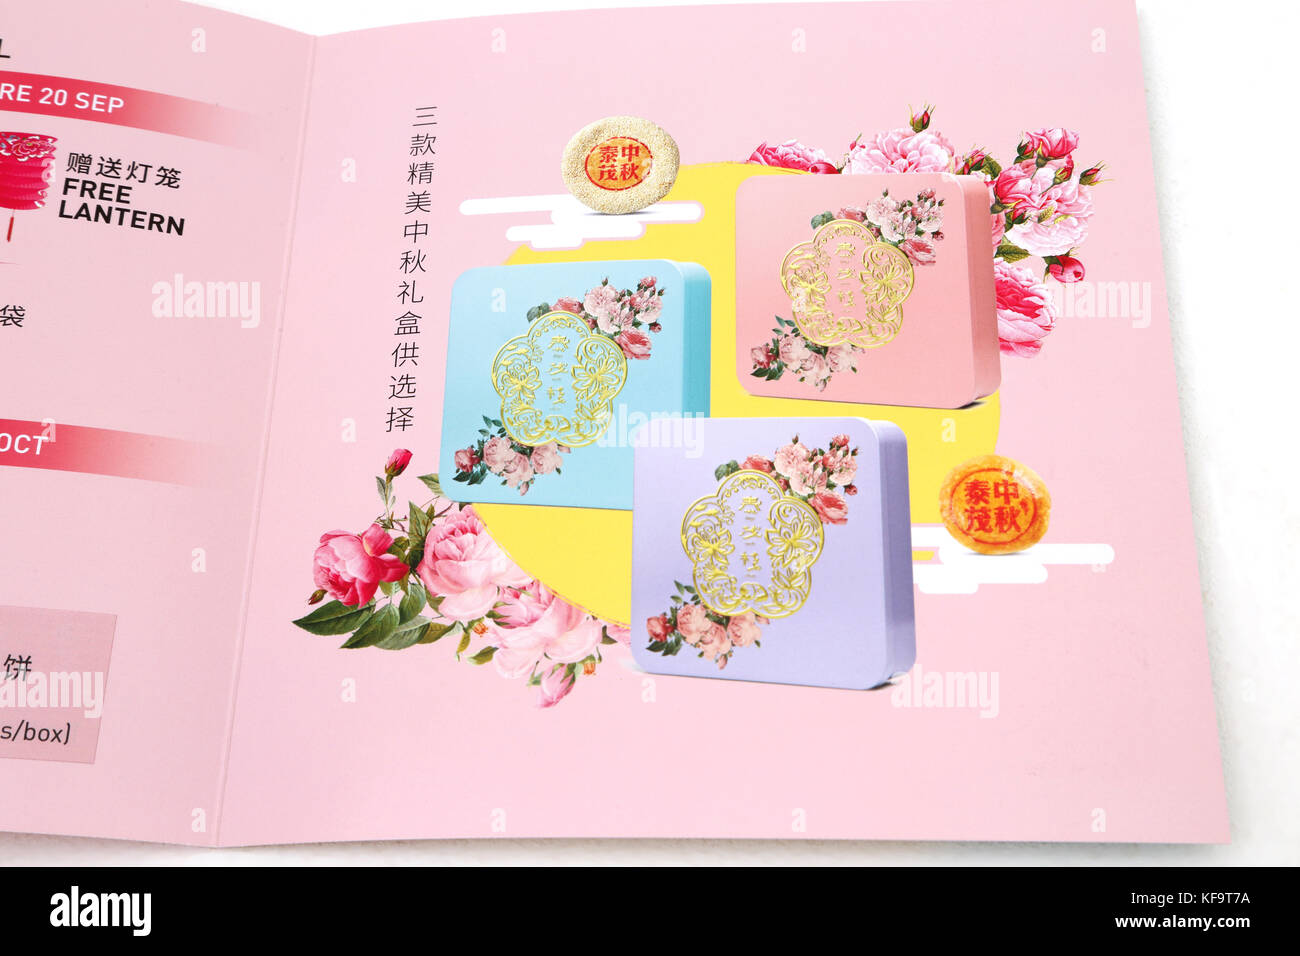 Thye Moh Chan Booklet showing Teochew Mooncakes Gift Sets Stock Photo